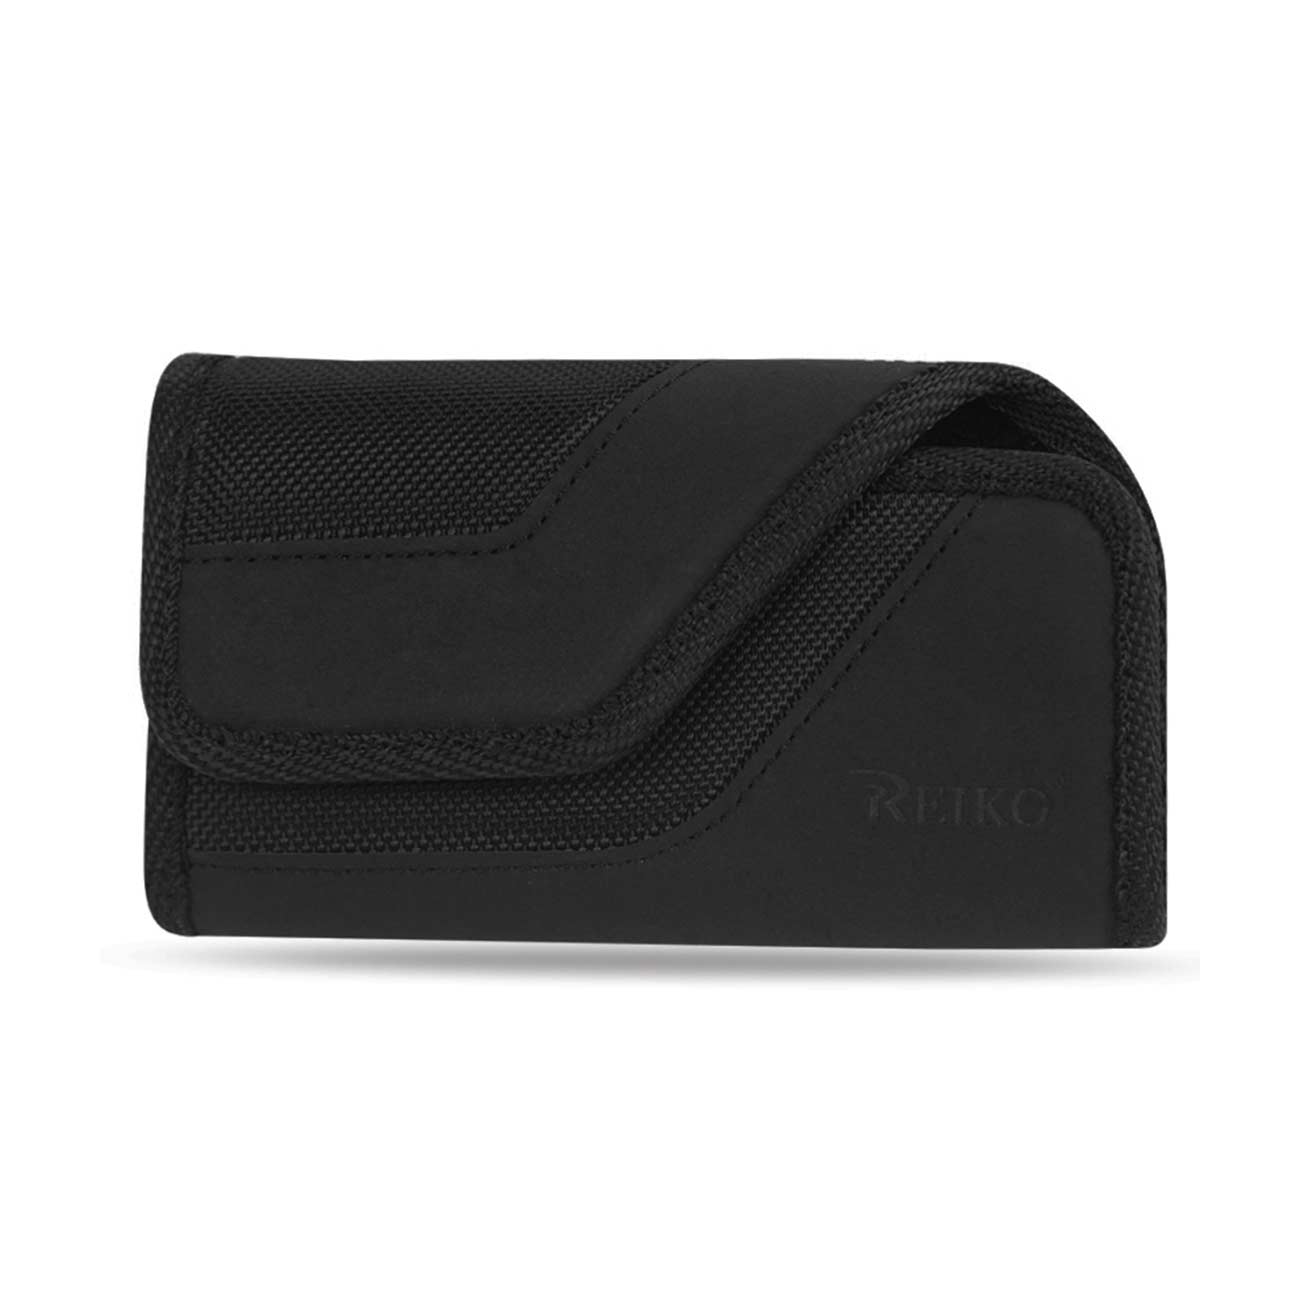 HORIZONTAL RUGGED POUCH WITH IPHONE5 IN BLACK (5.13X2.936X0.7 INCHES PLUS)